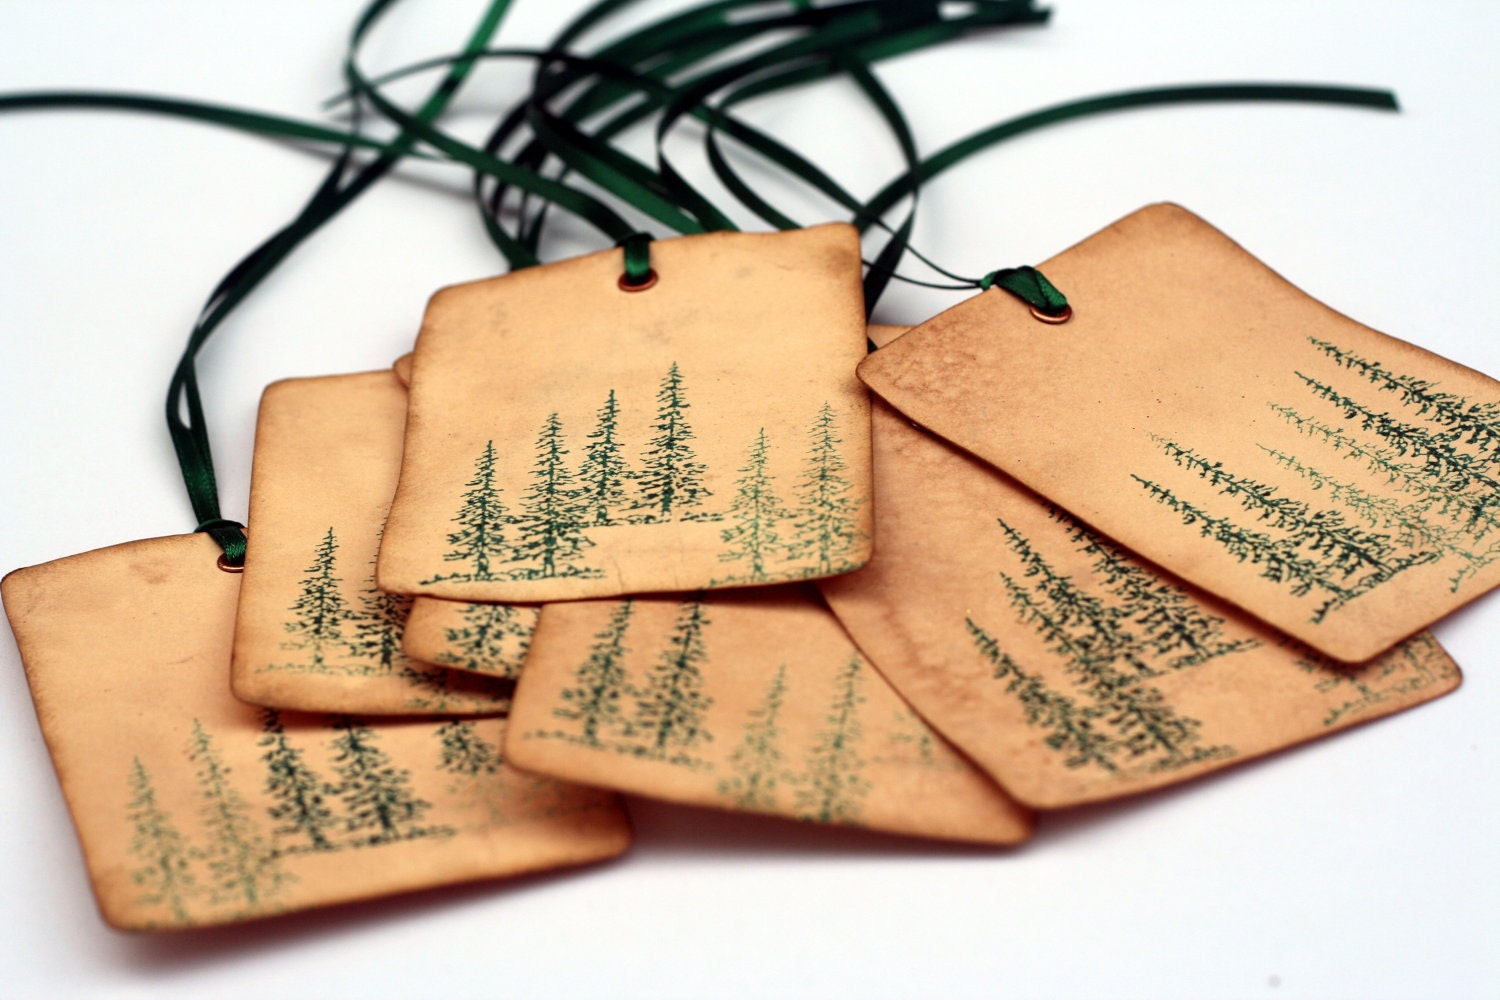 Christmas Tags: Christmas Tags Evergreen Trees Vintage Inspired Tag Gift